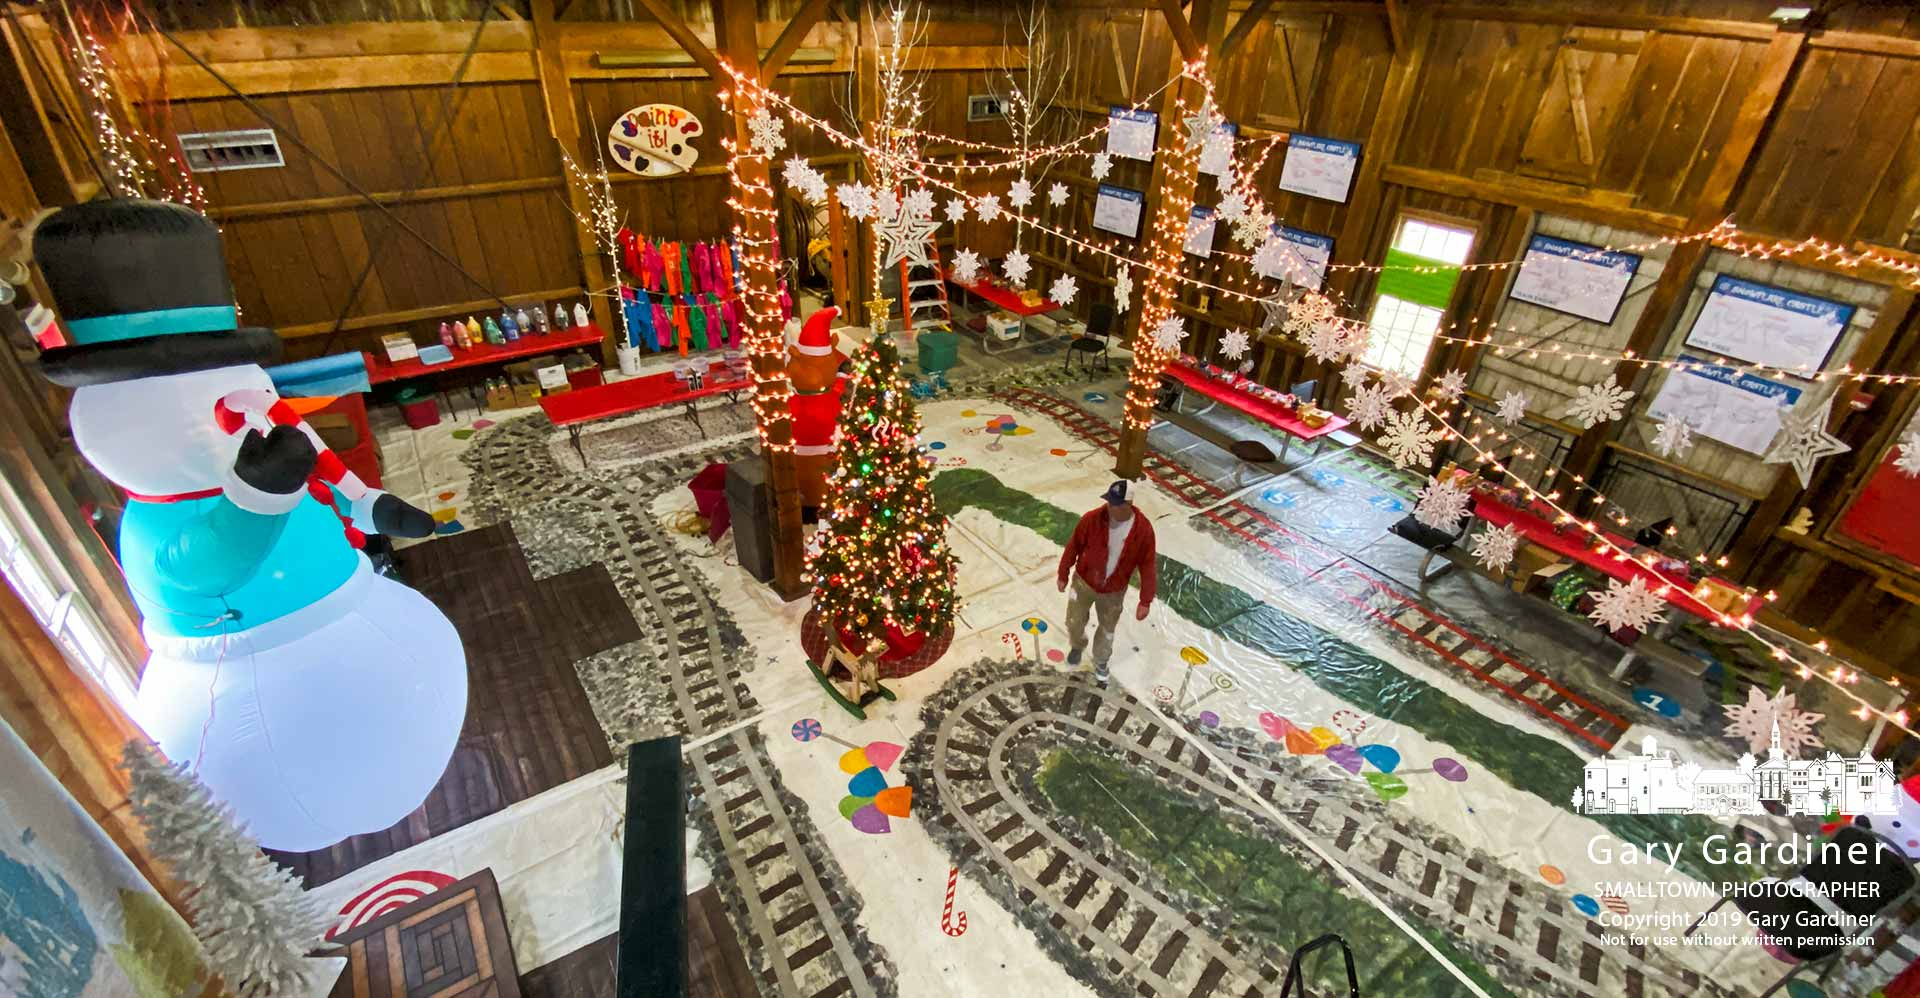 A volunteer worker walks through the main floor of the Everal Barn after it was decorated for Snowflake Castle, Westerville's annual Christmas season celebration for children who get to make their own toys and have a seat in Santa Claus's lap. My Final Photo for Nov. 26, 2019.